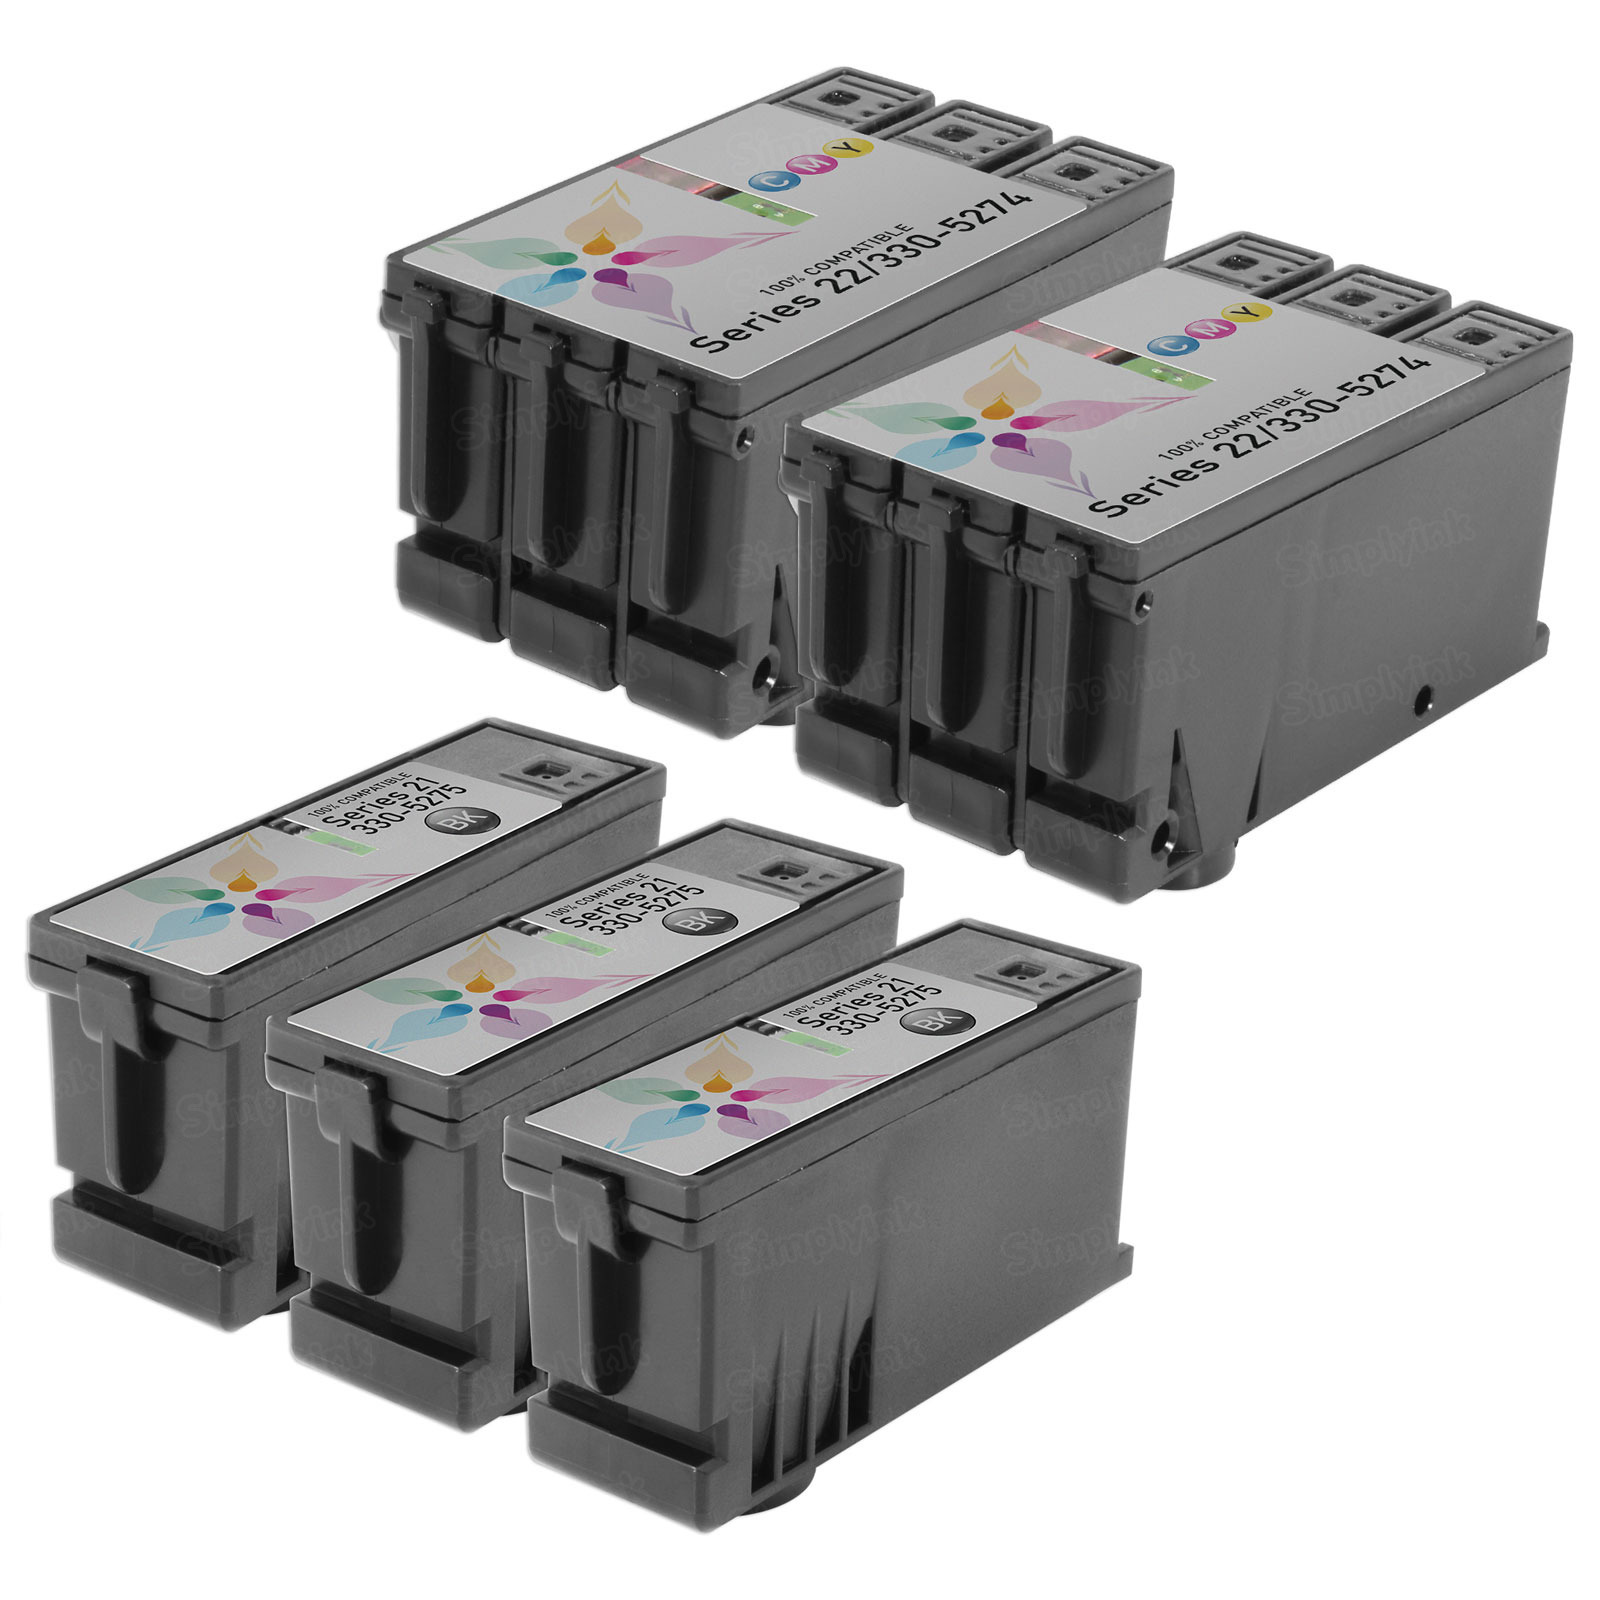 Inkjet Supplies for Dell Printers - Compatible Bulk Set of 5 Ink Cartridges 3 Black Dell Y498D (Series 21) and 2 Color Dell Y499D (Series 21)